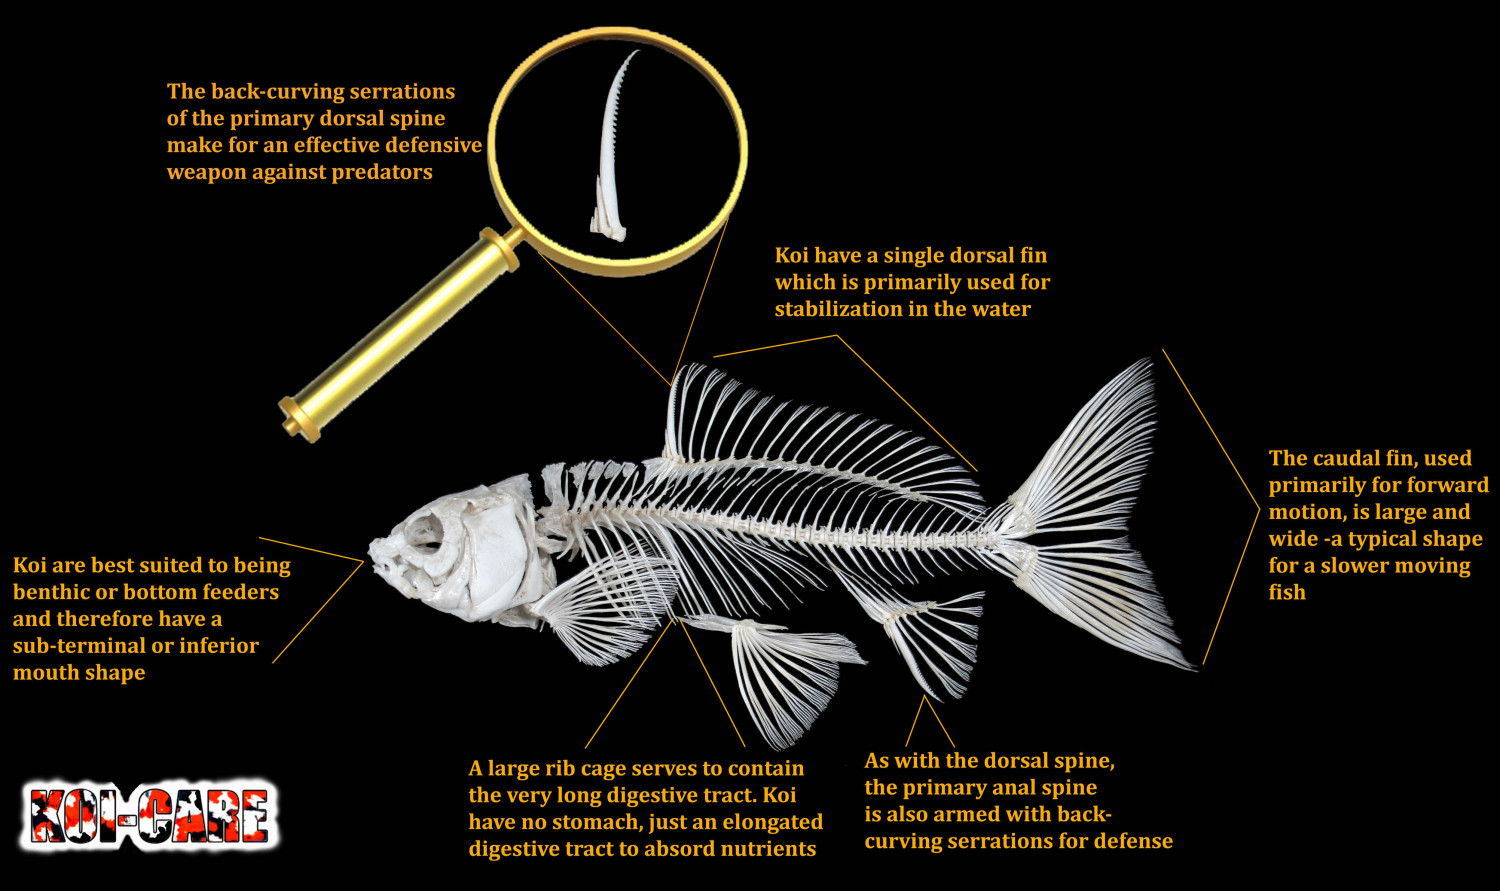 Koi Fish Skeleton Anatomy Diagram | Visual.ly